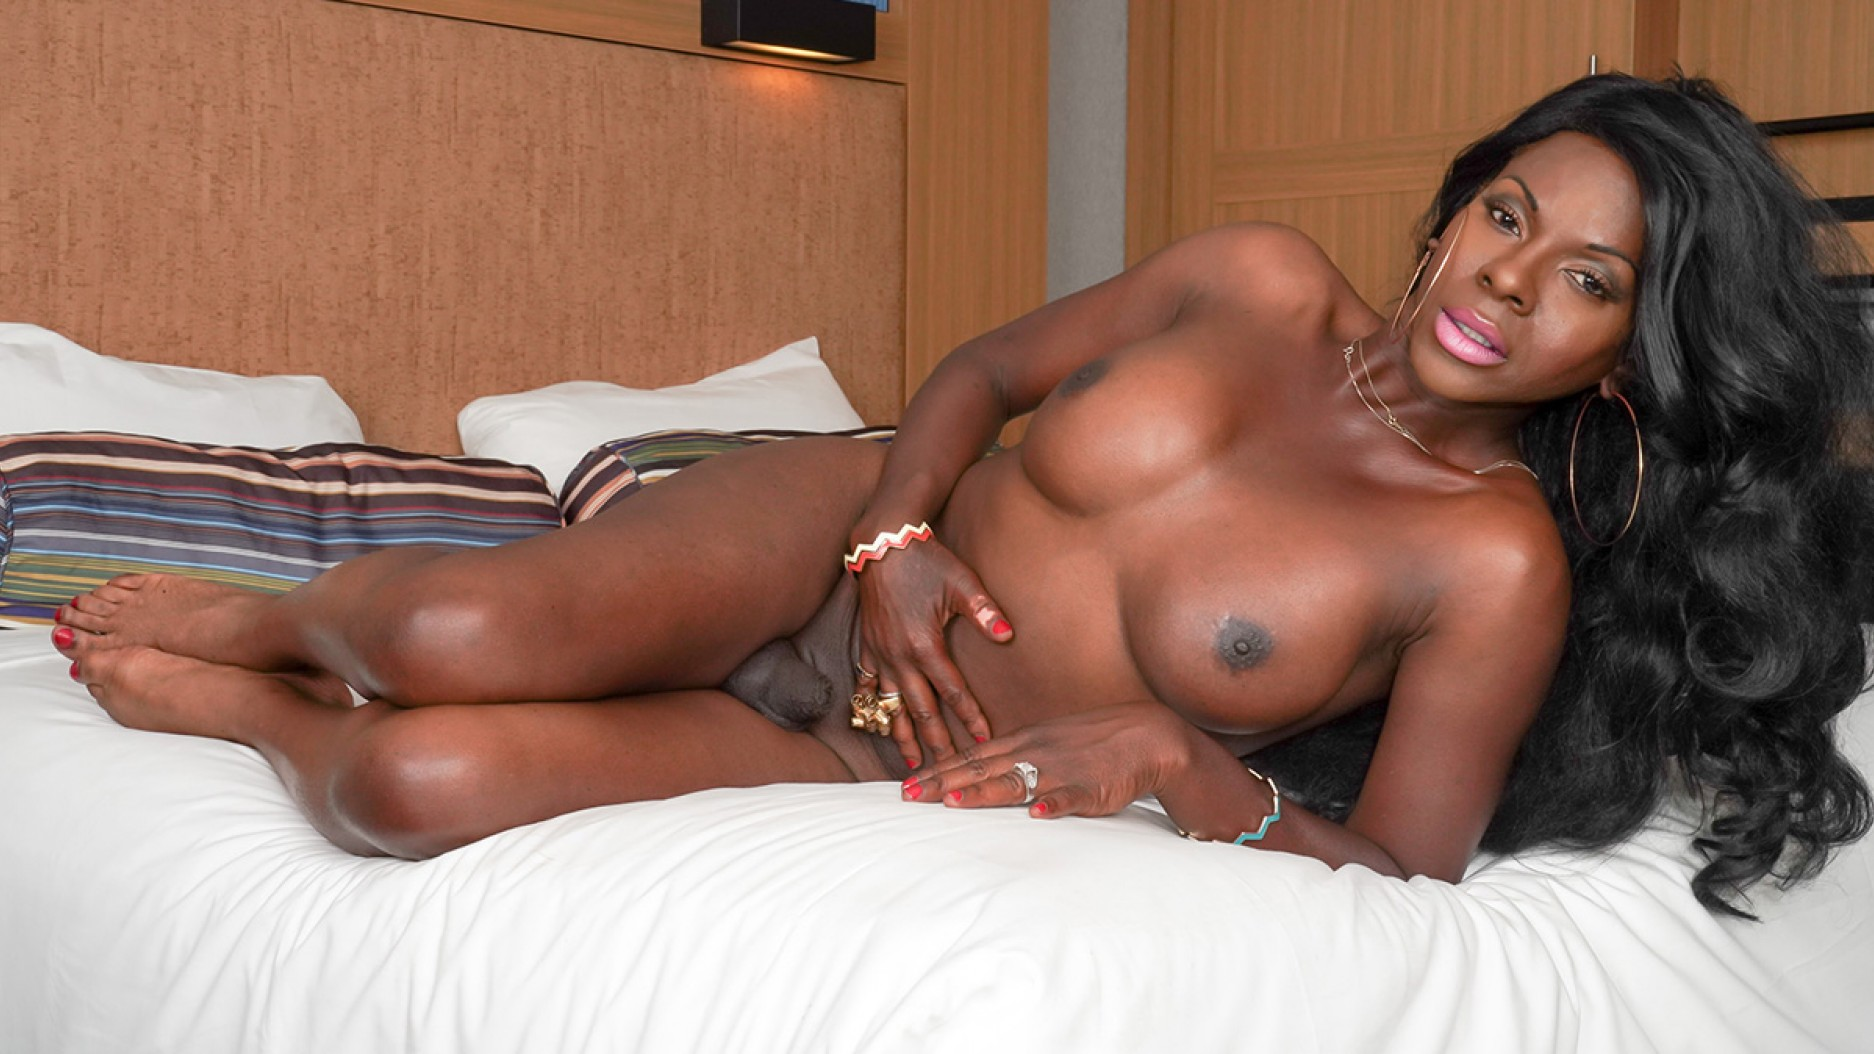 TGirl40 Ravishing Cinnamon's Bedroom Play!  Shemale XXX WEB-DL Groobynetwork